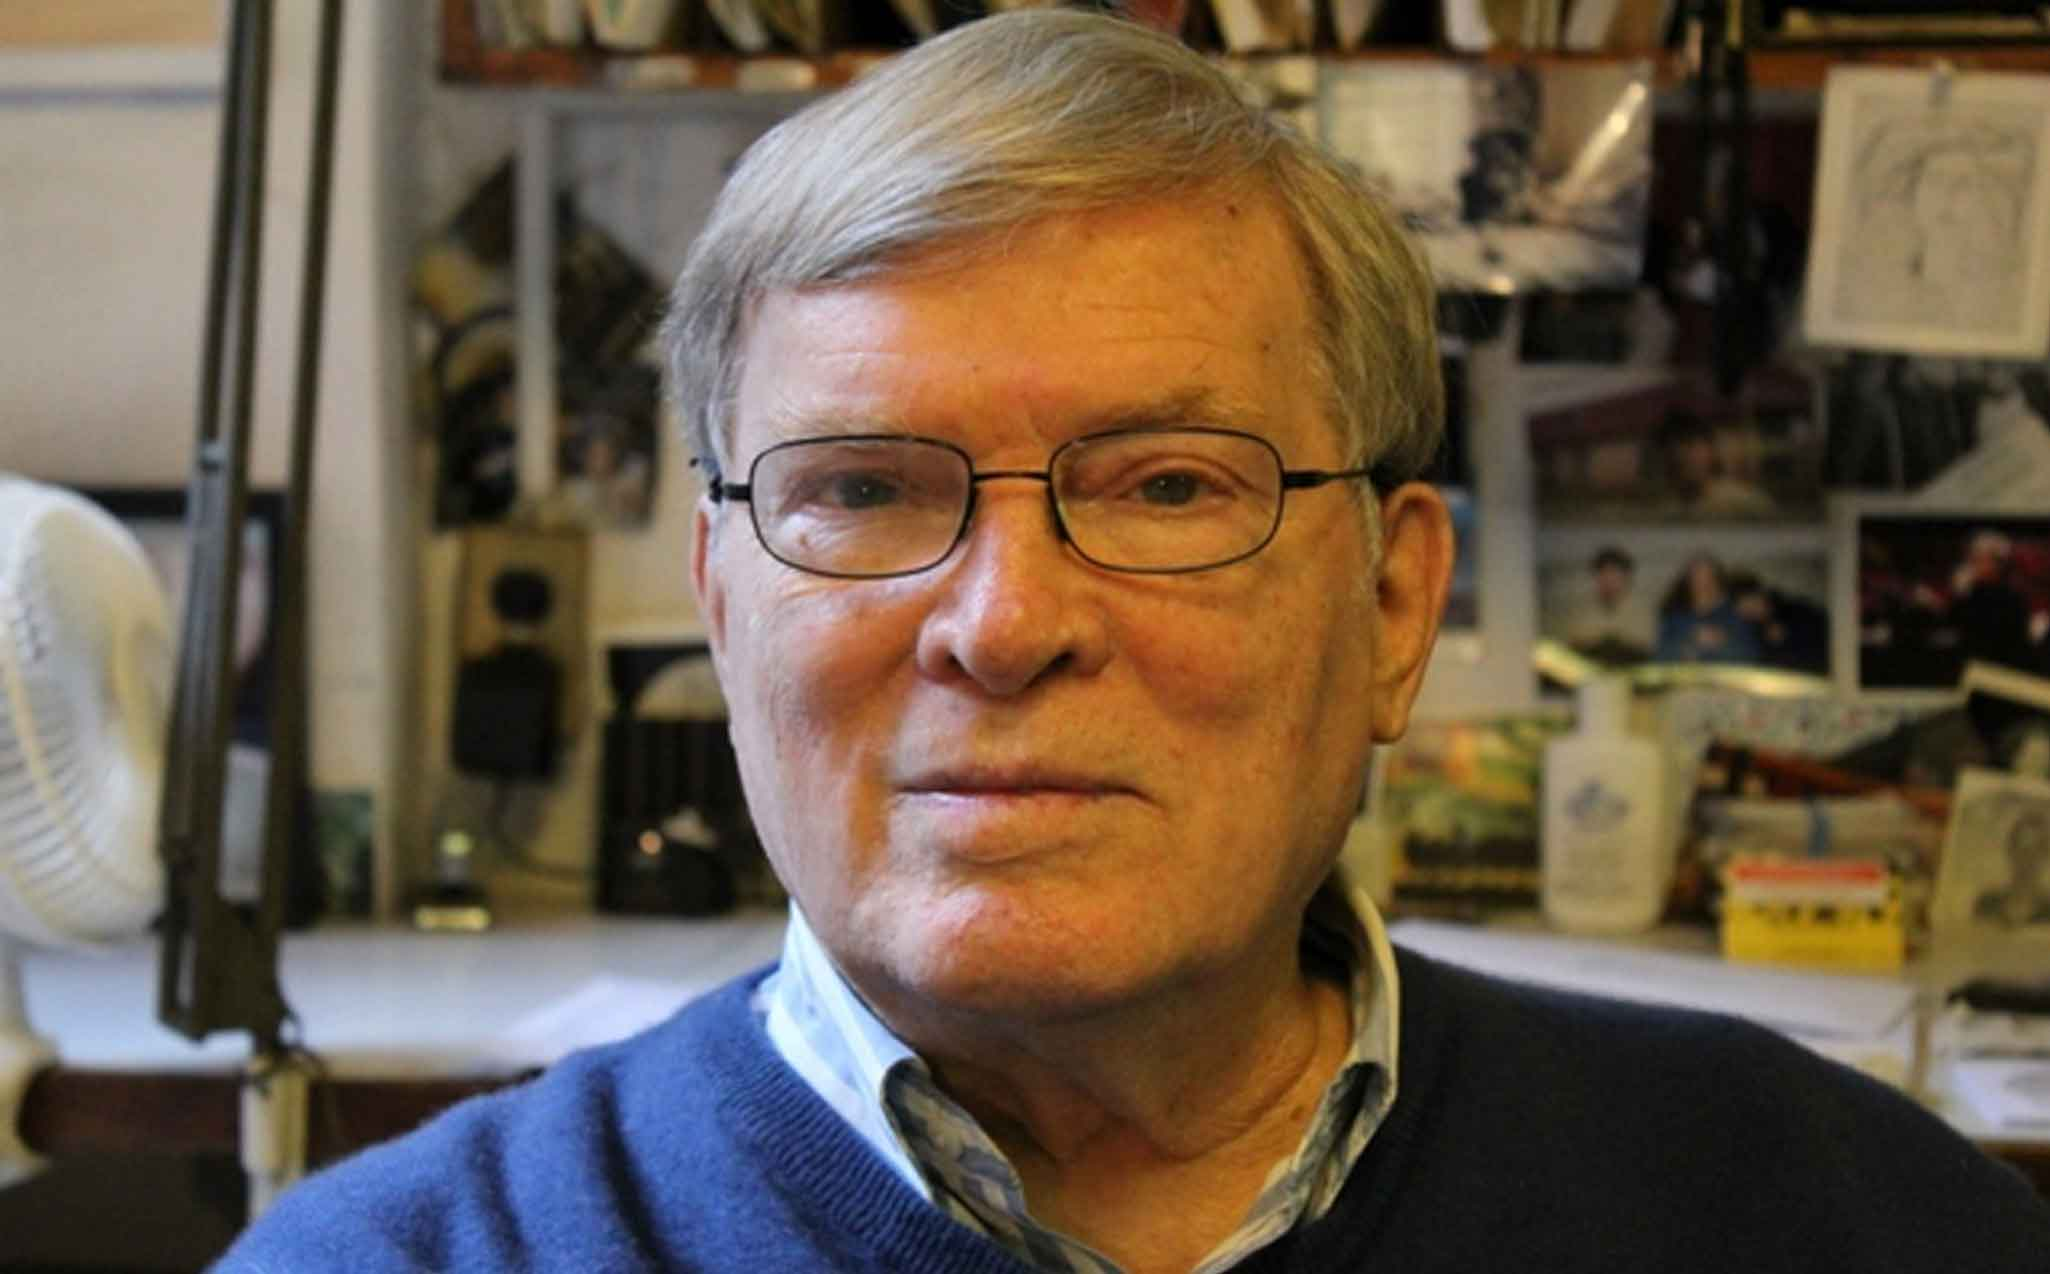 PRIMARY introduced by Filmmaker D.A. Pennebaker